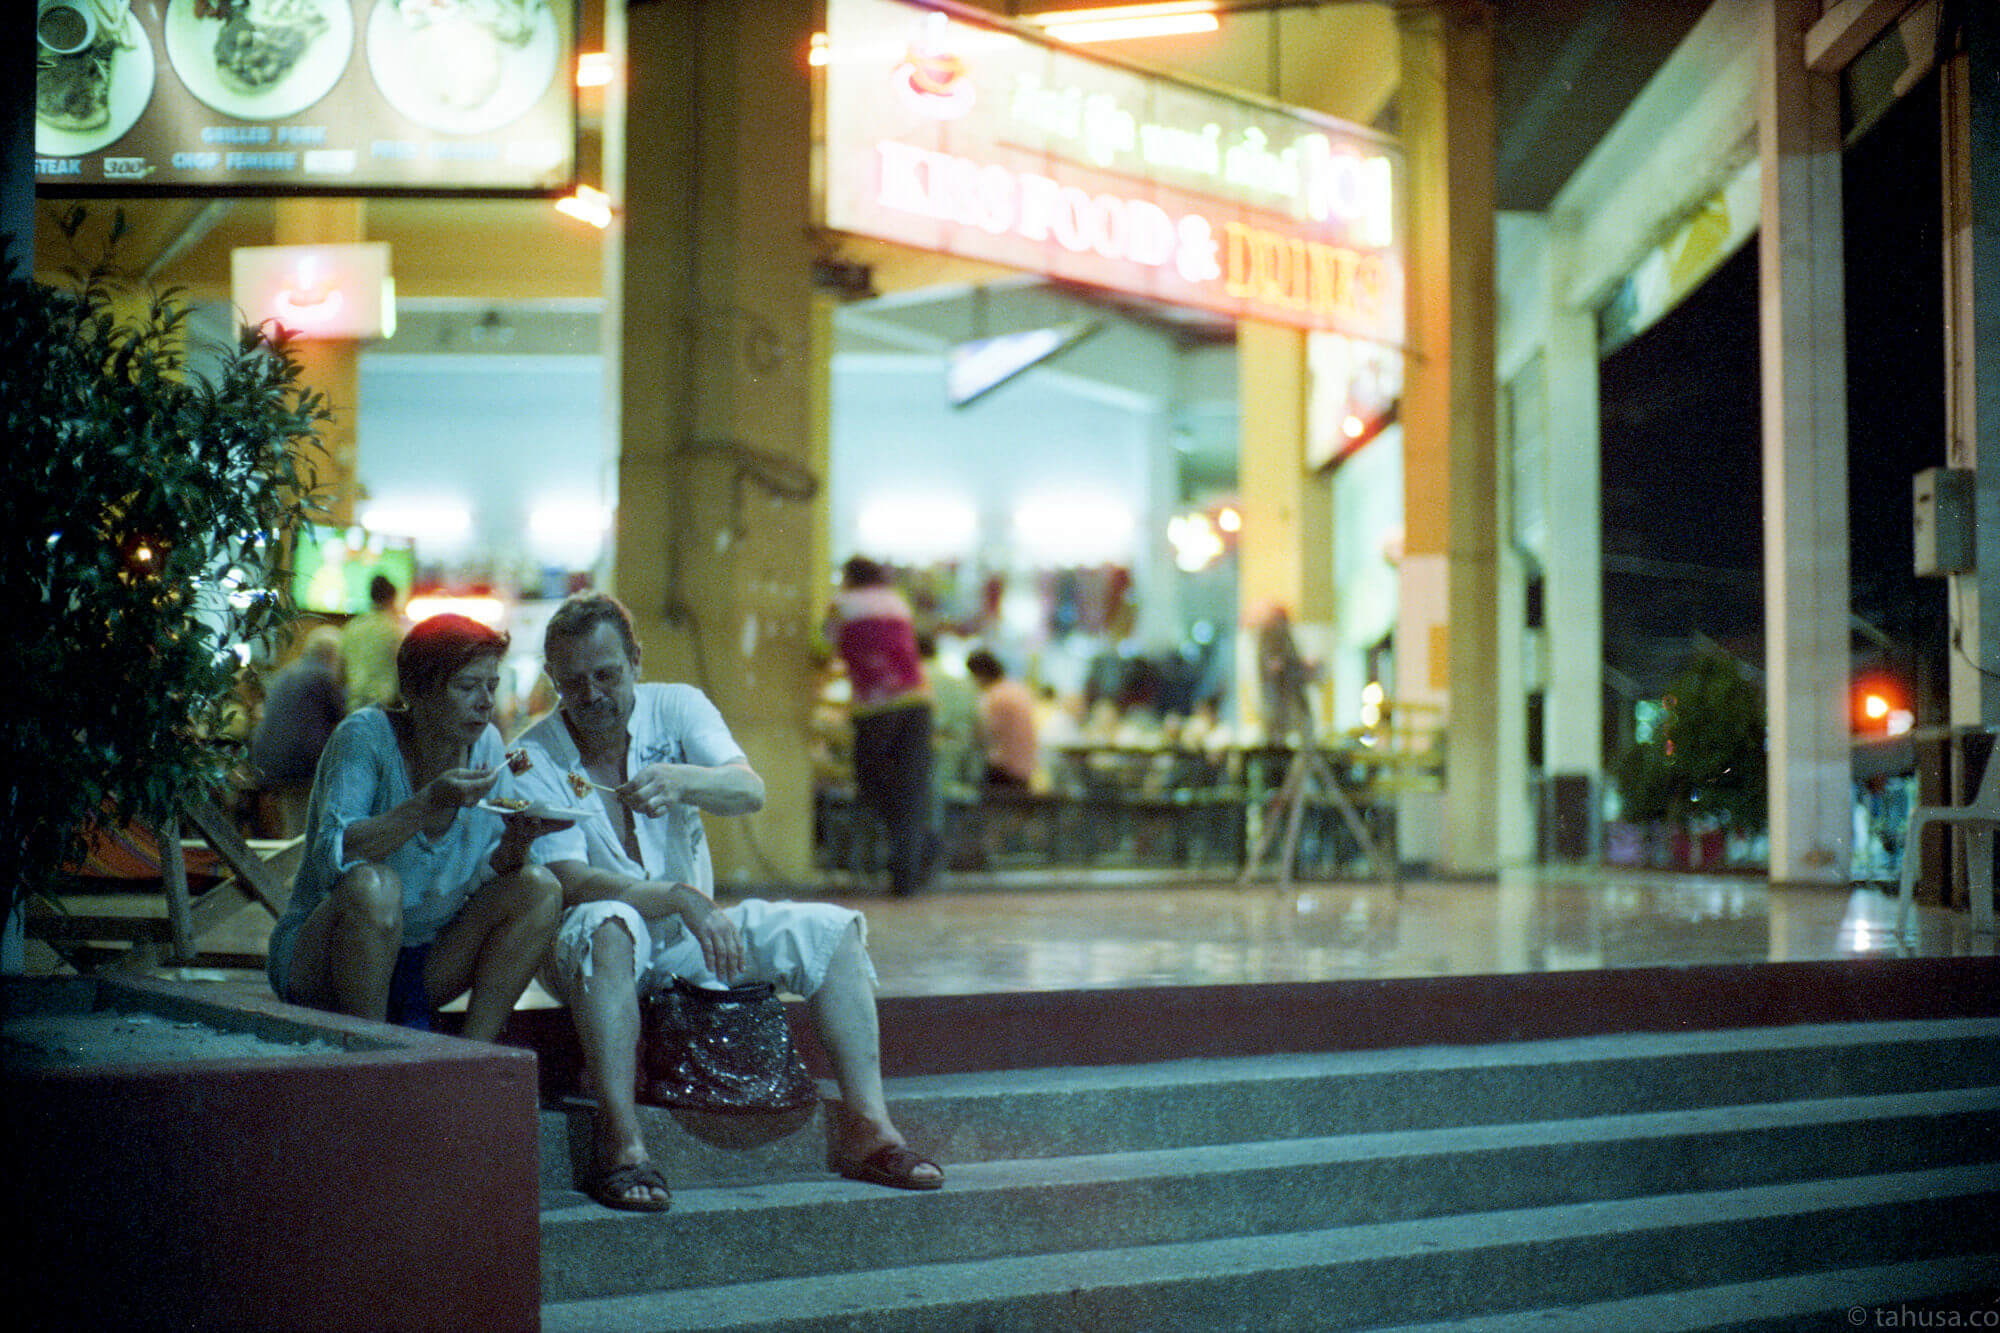 husband-and-wife-sharing-food-pattaya-thailand-HK-Cinestill-800T-800-iso800-Tungsten-film-movie-kodak-with-Noctilux-50mm-f1-f1.0-e58-v1-large-aperture-bokeh-grain-pushed-street-snap